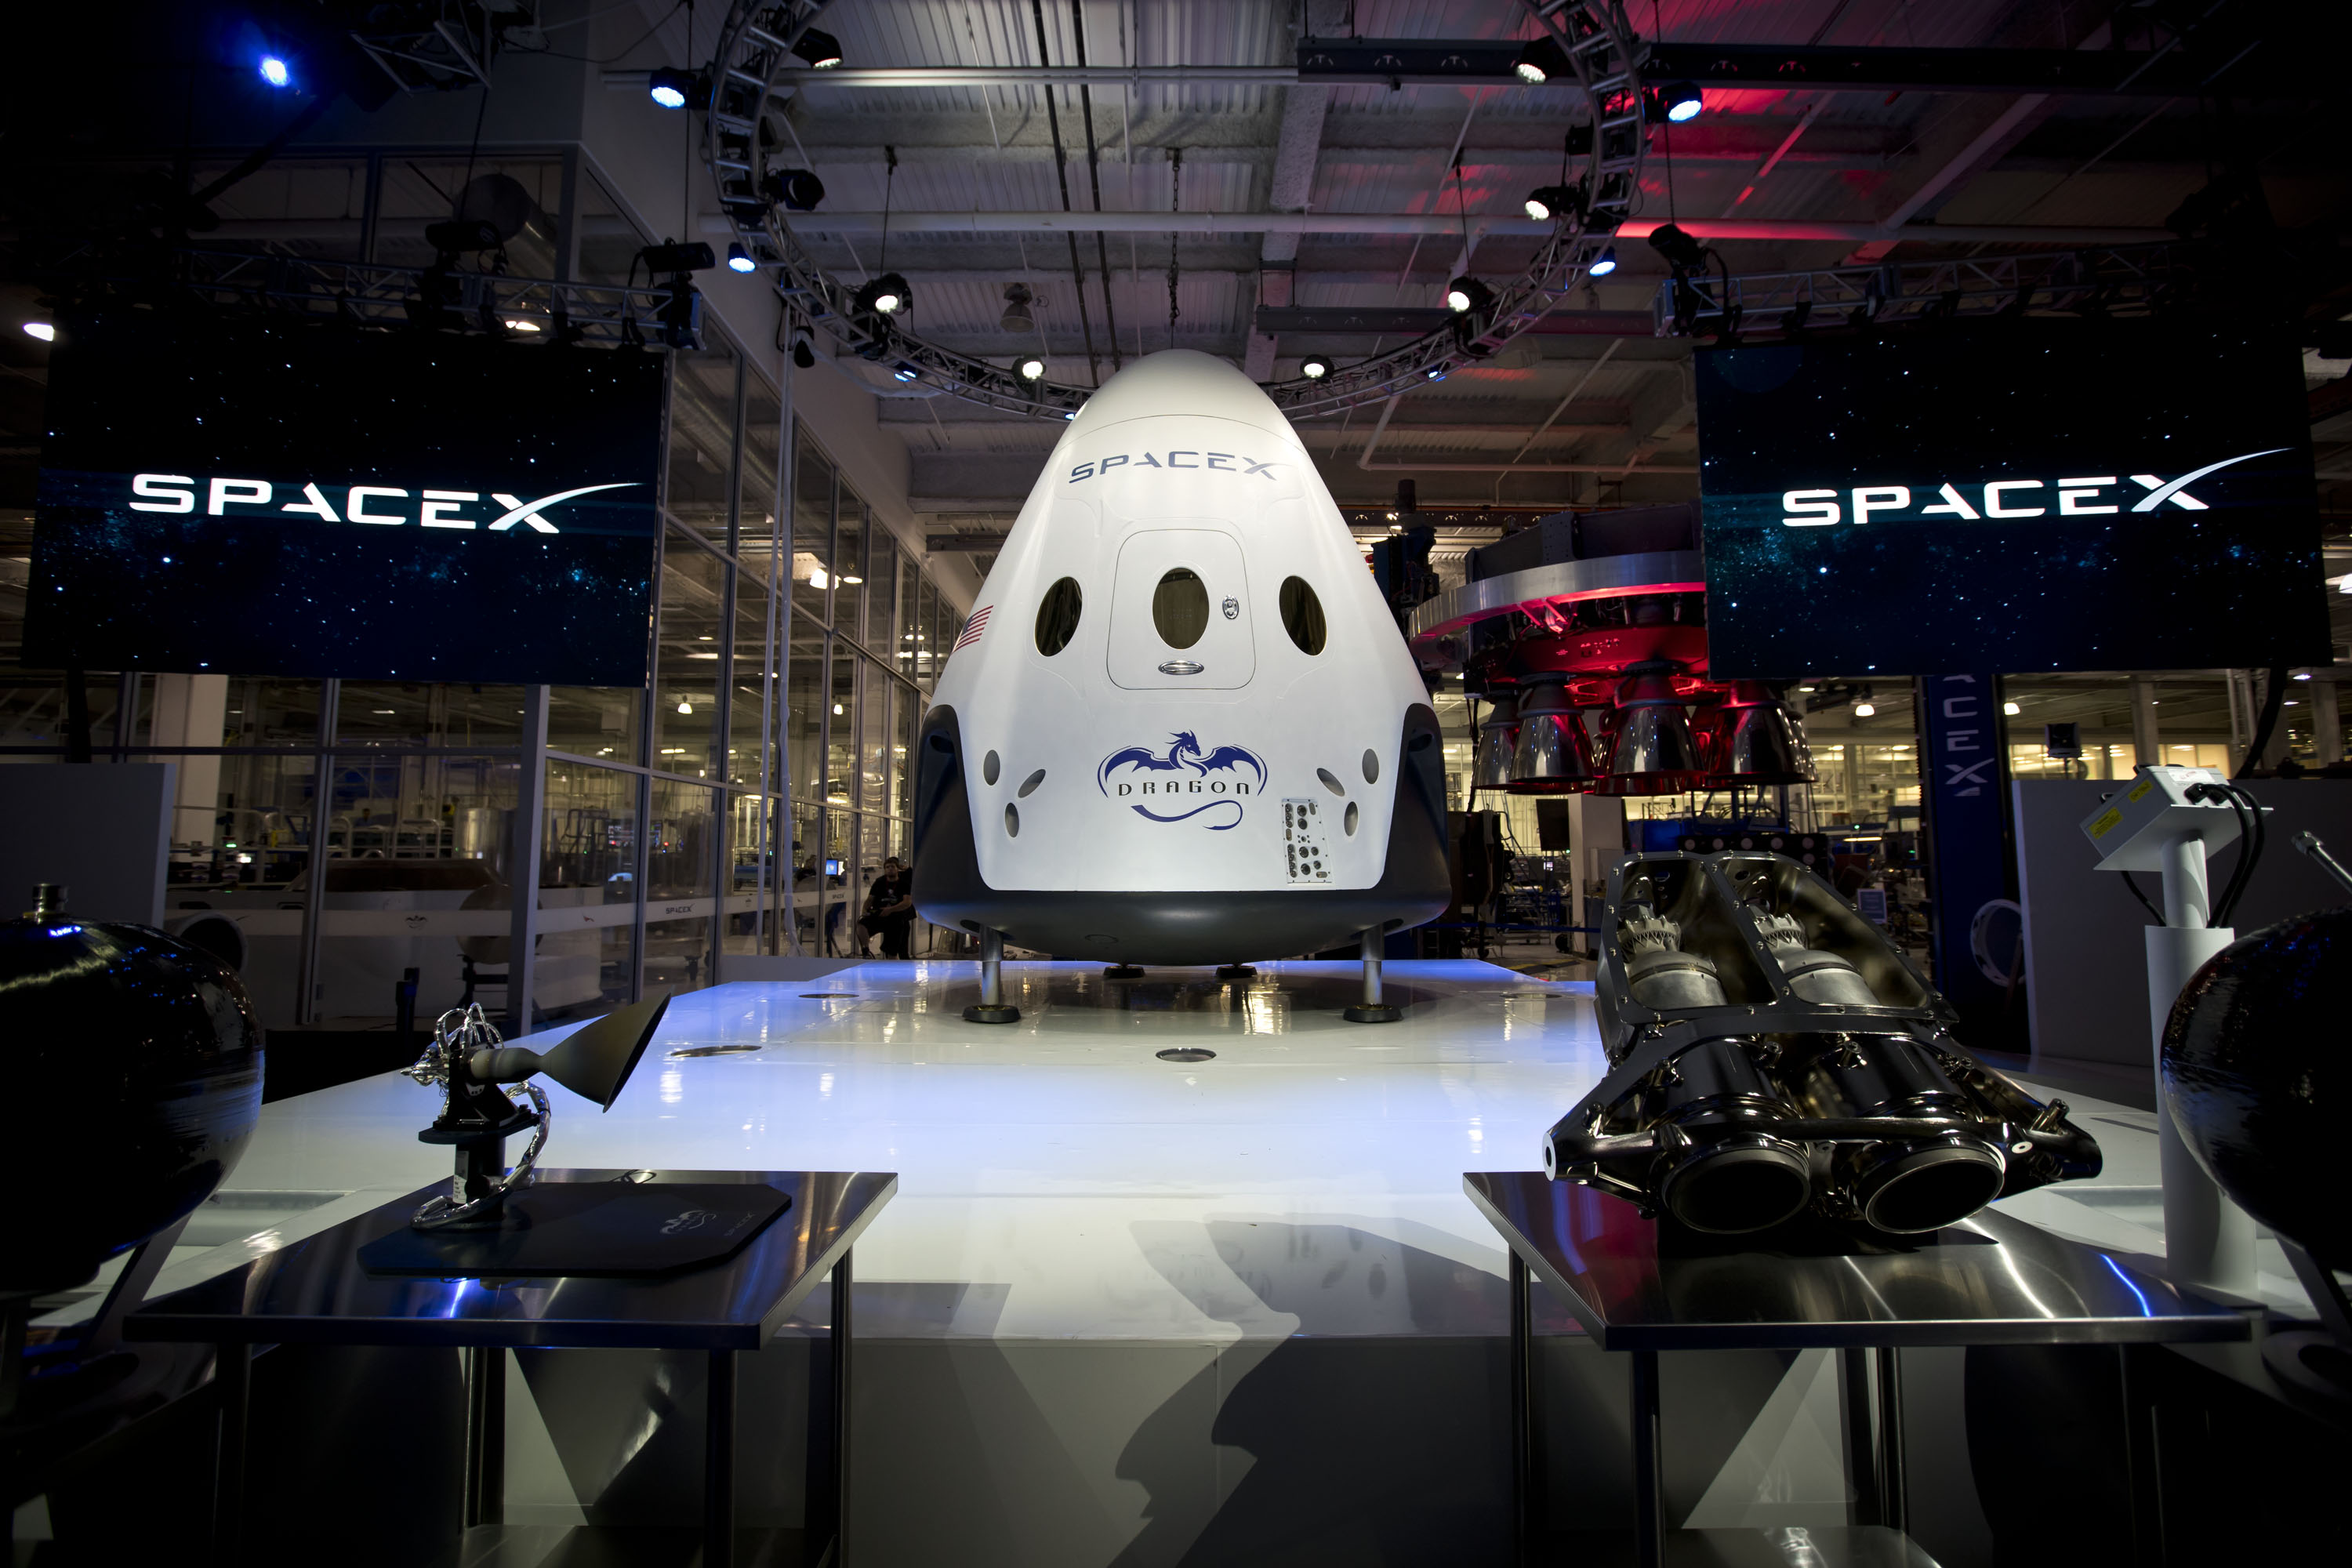 Moonshot pad roaring back into action with SpaceX launch